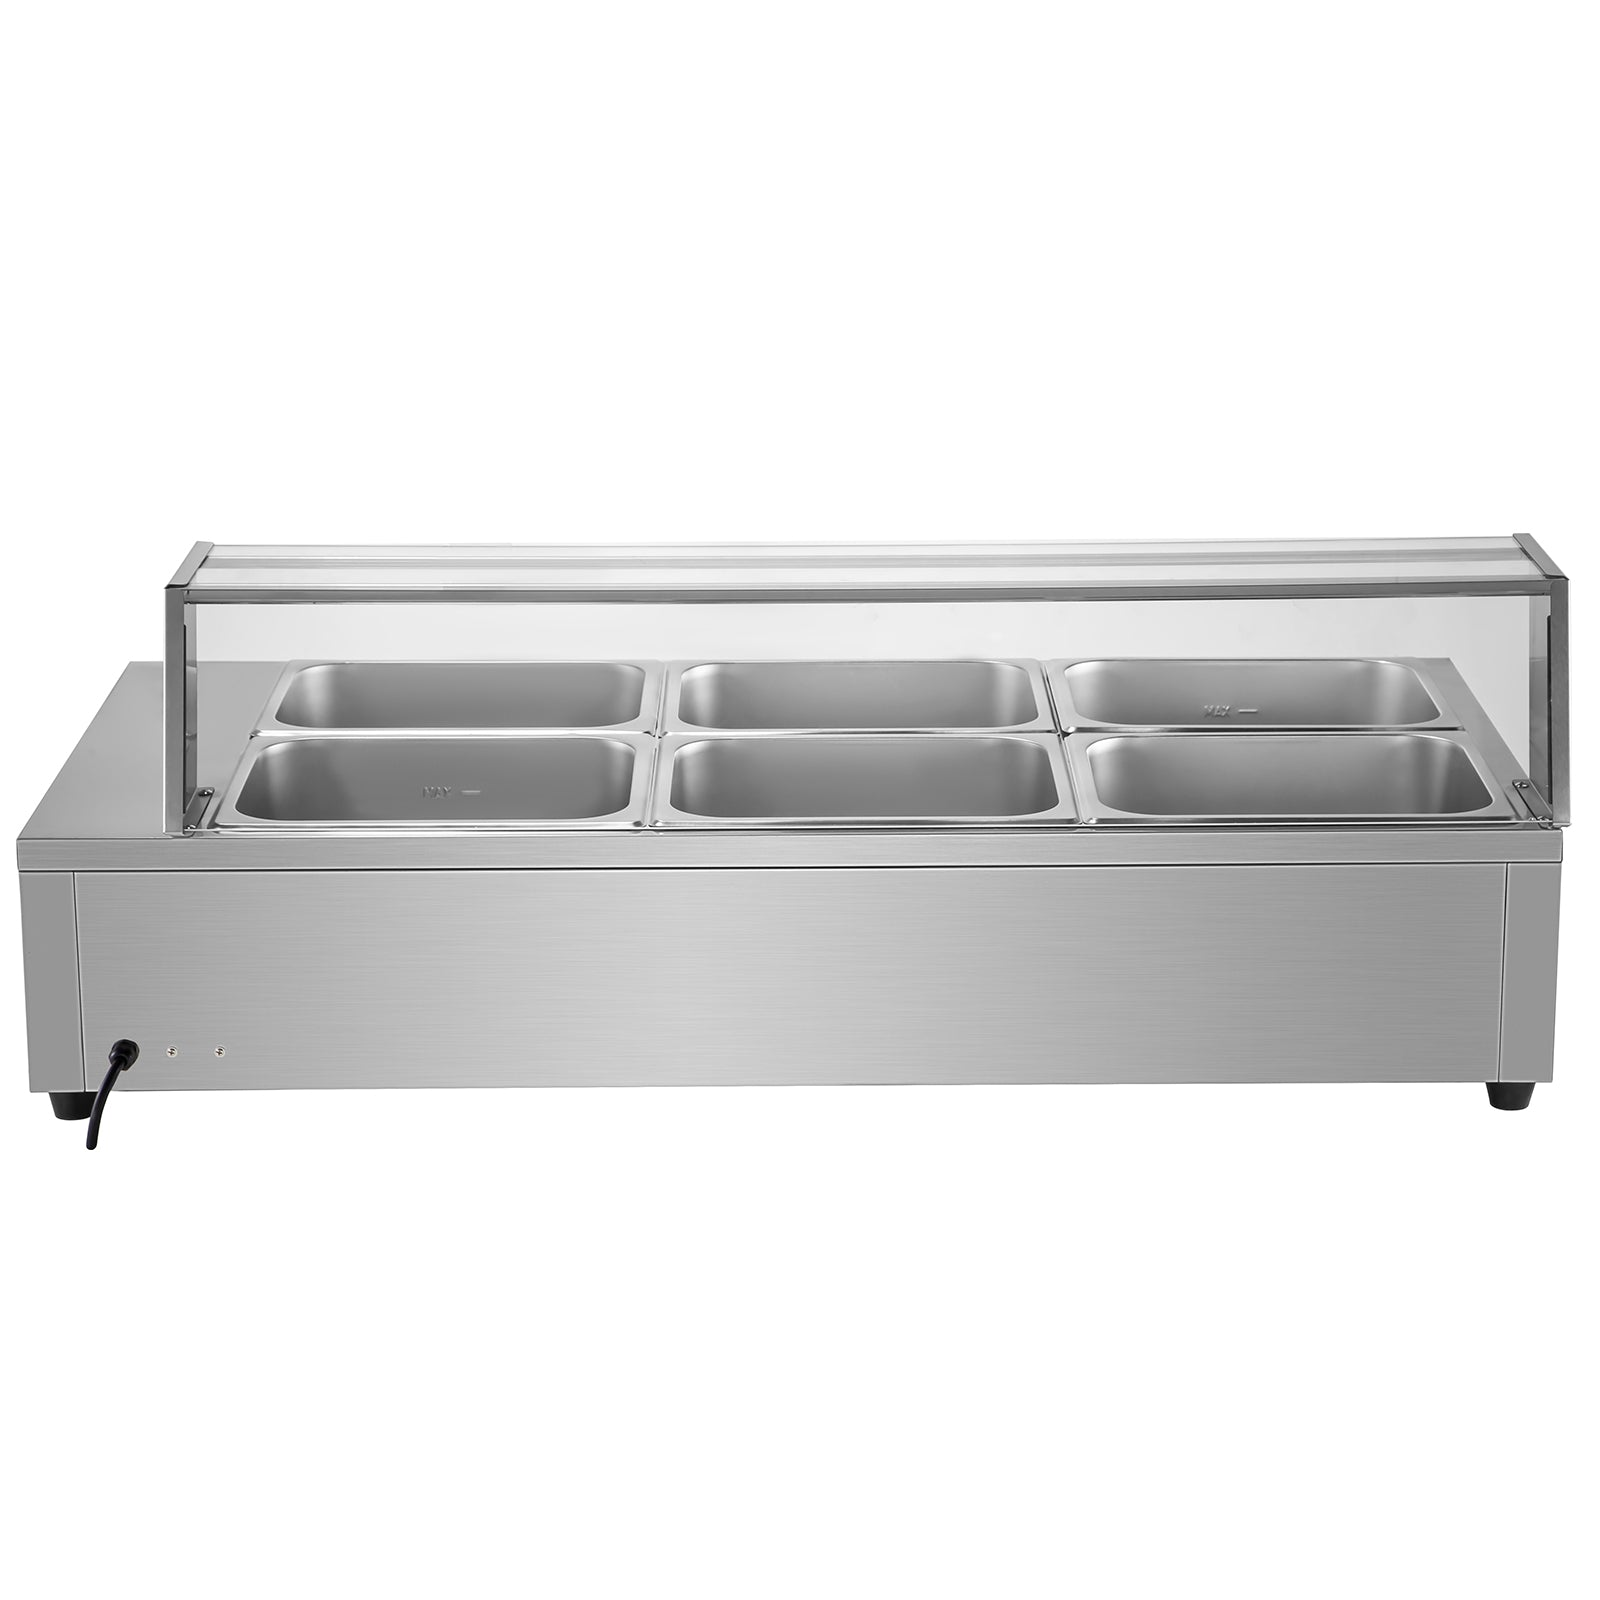 6-pan Bain Marie Food Warmer 6-inch Deep Commercial Food Steam Table 1500w Sus